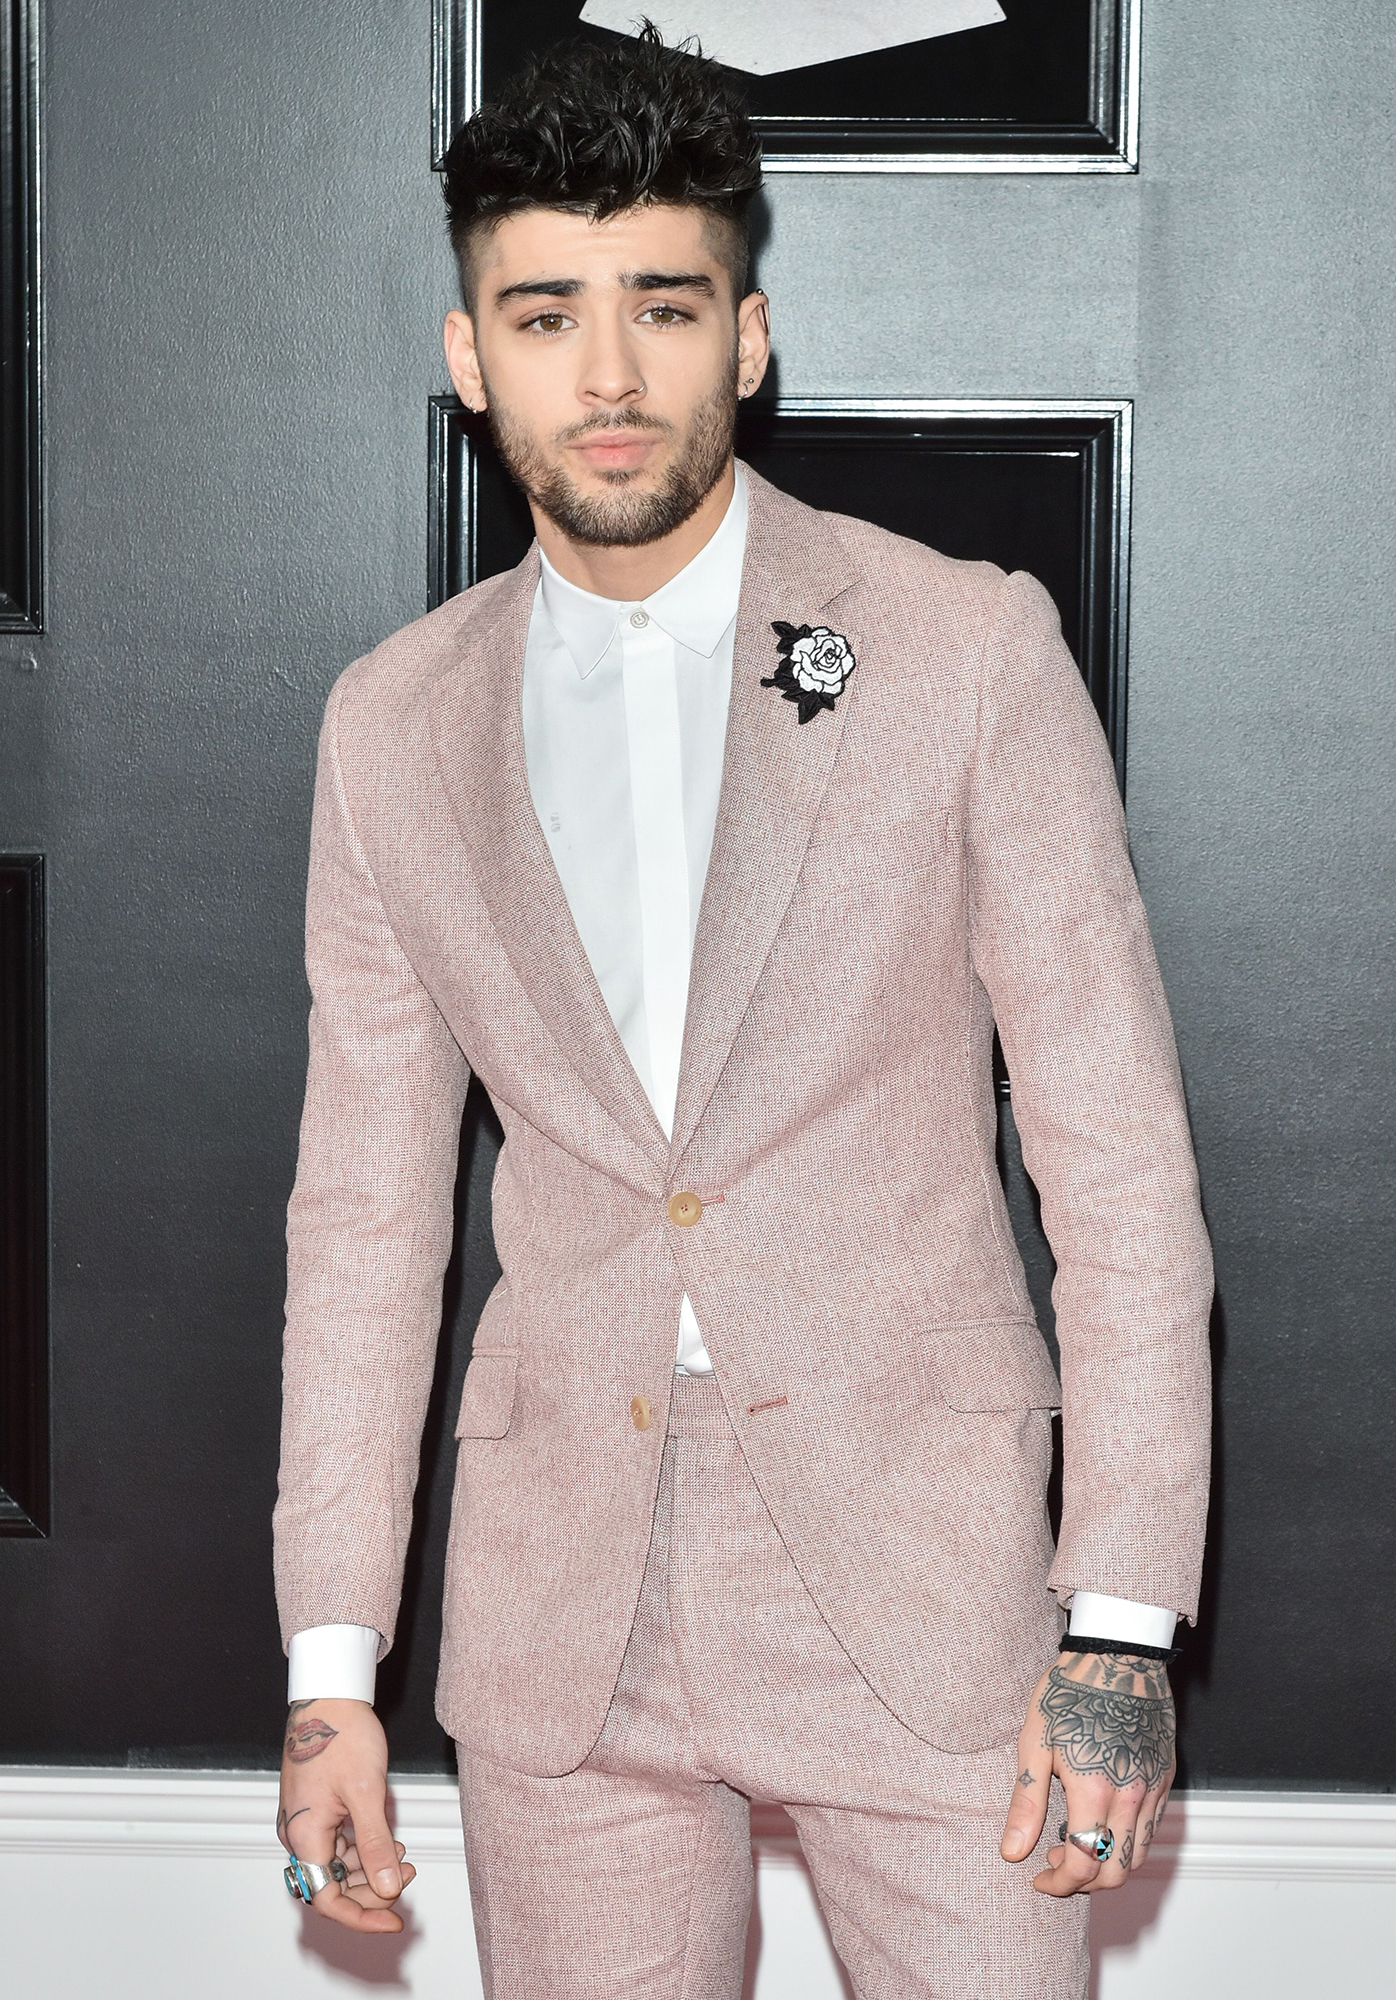 Zayn Malik Through the Years, From One Direction to Solo: Photos